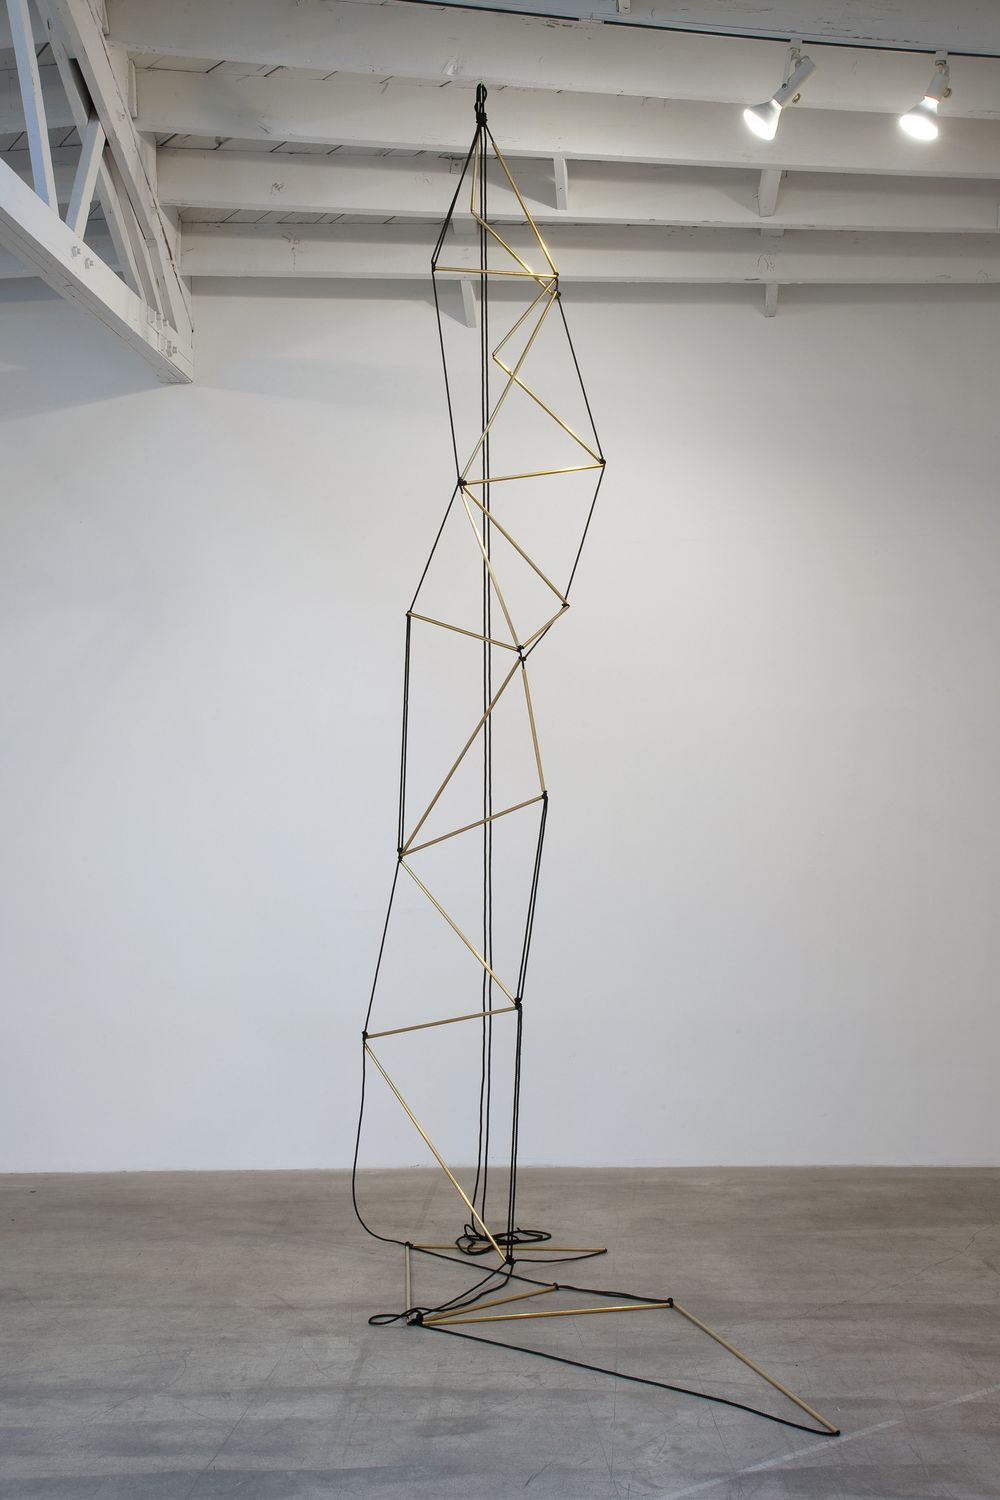 Leonor Antunes, Chain of Triangles (fron St. Saturnin to Rodez), 2010